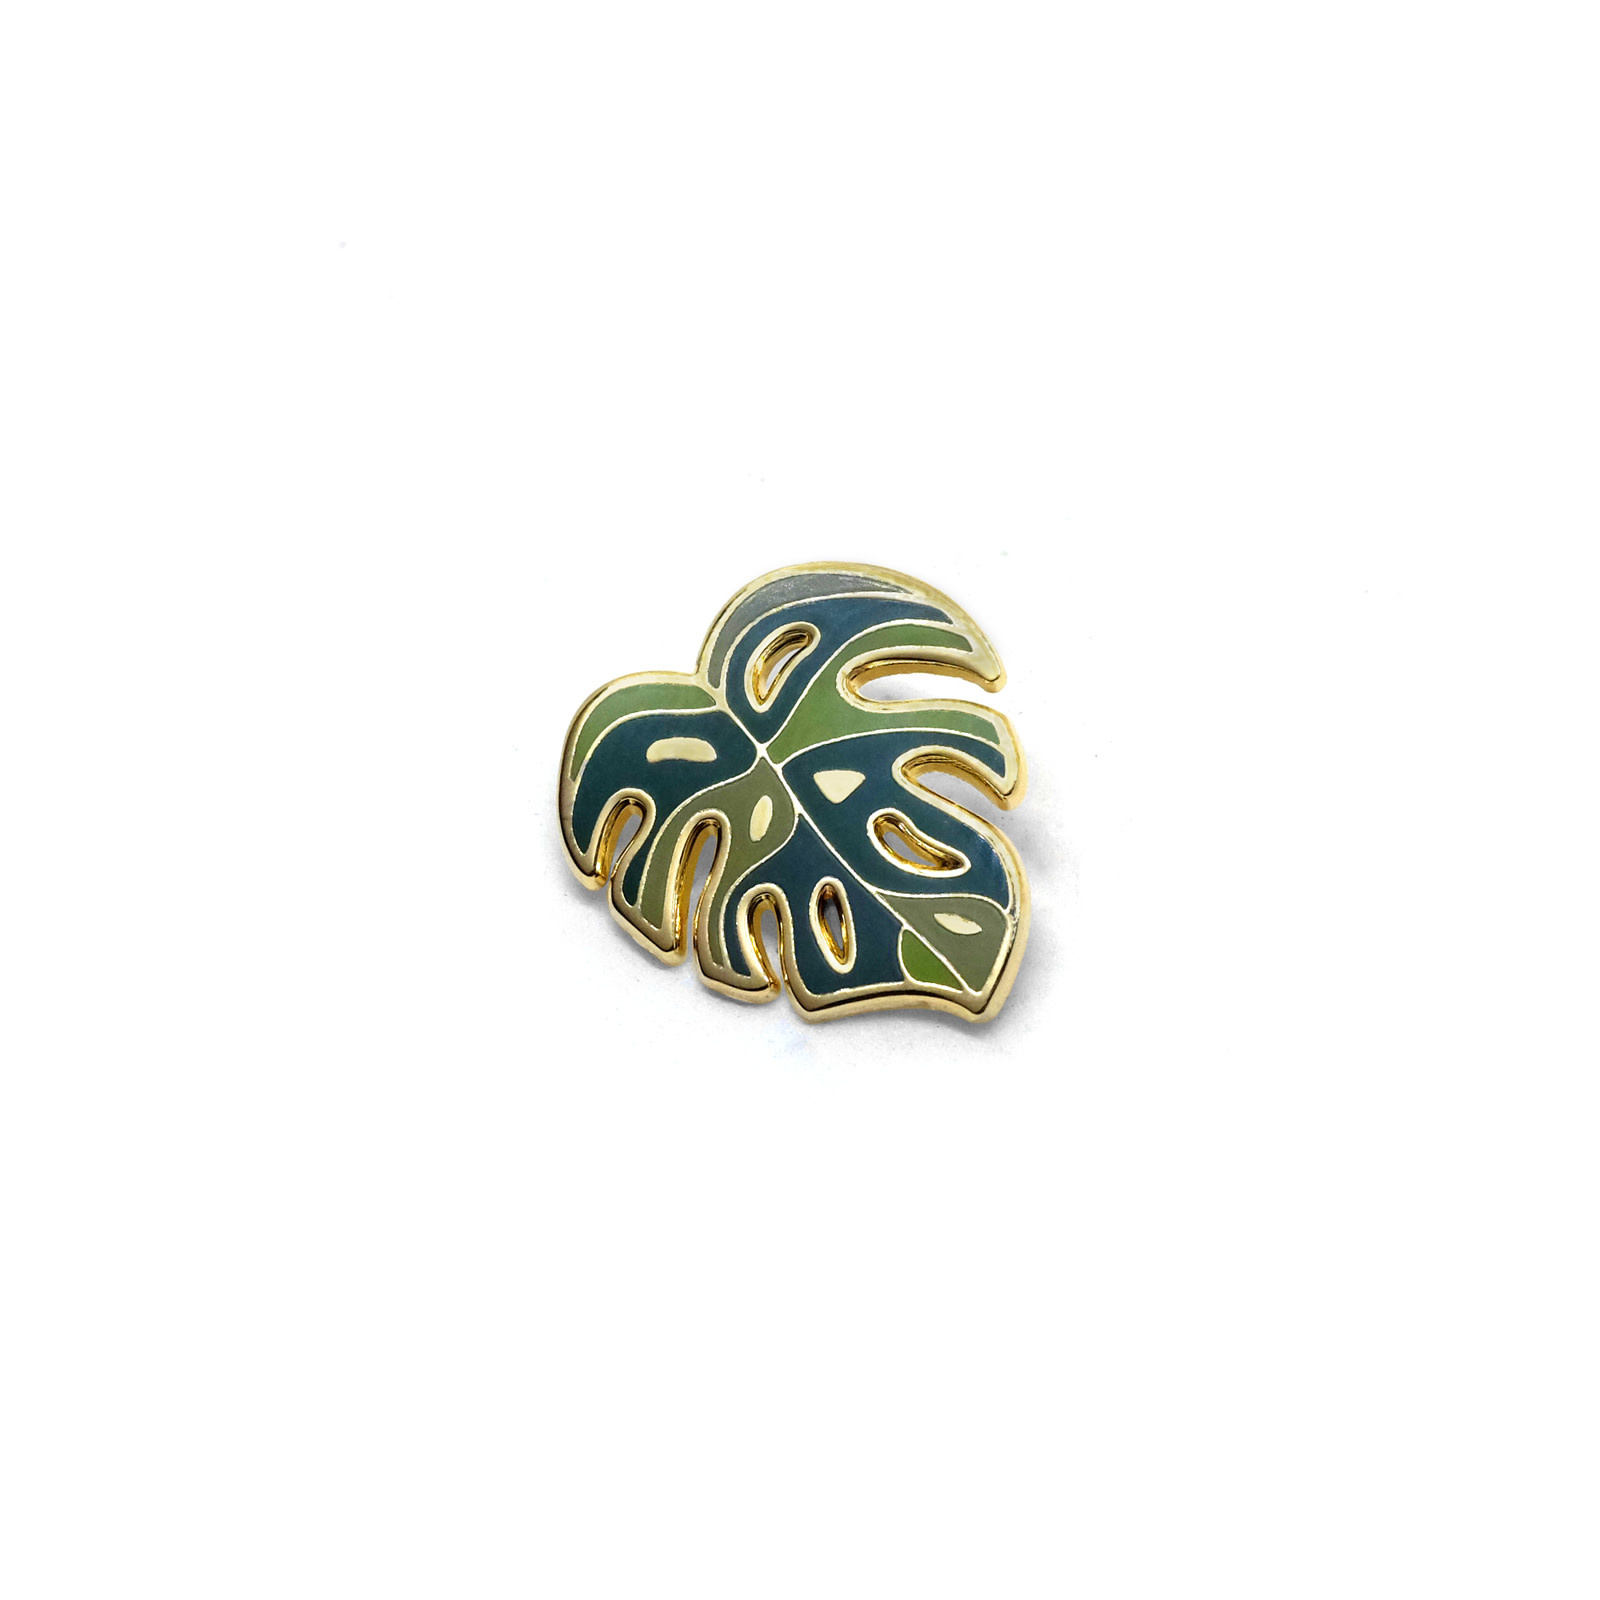 Lost Lust Supply Enamel Pin - Synthesis Monstera Deliciosa